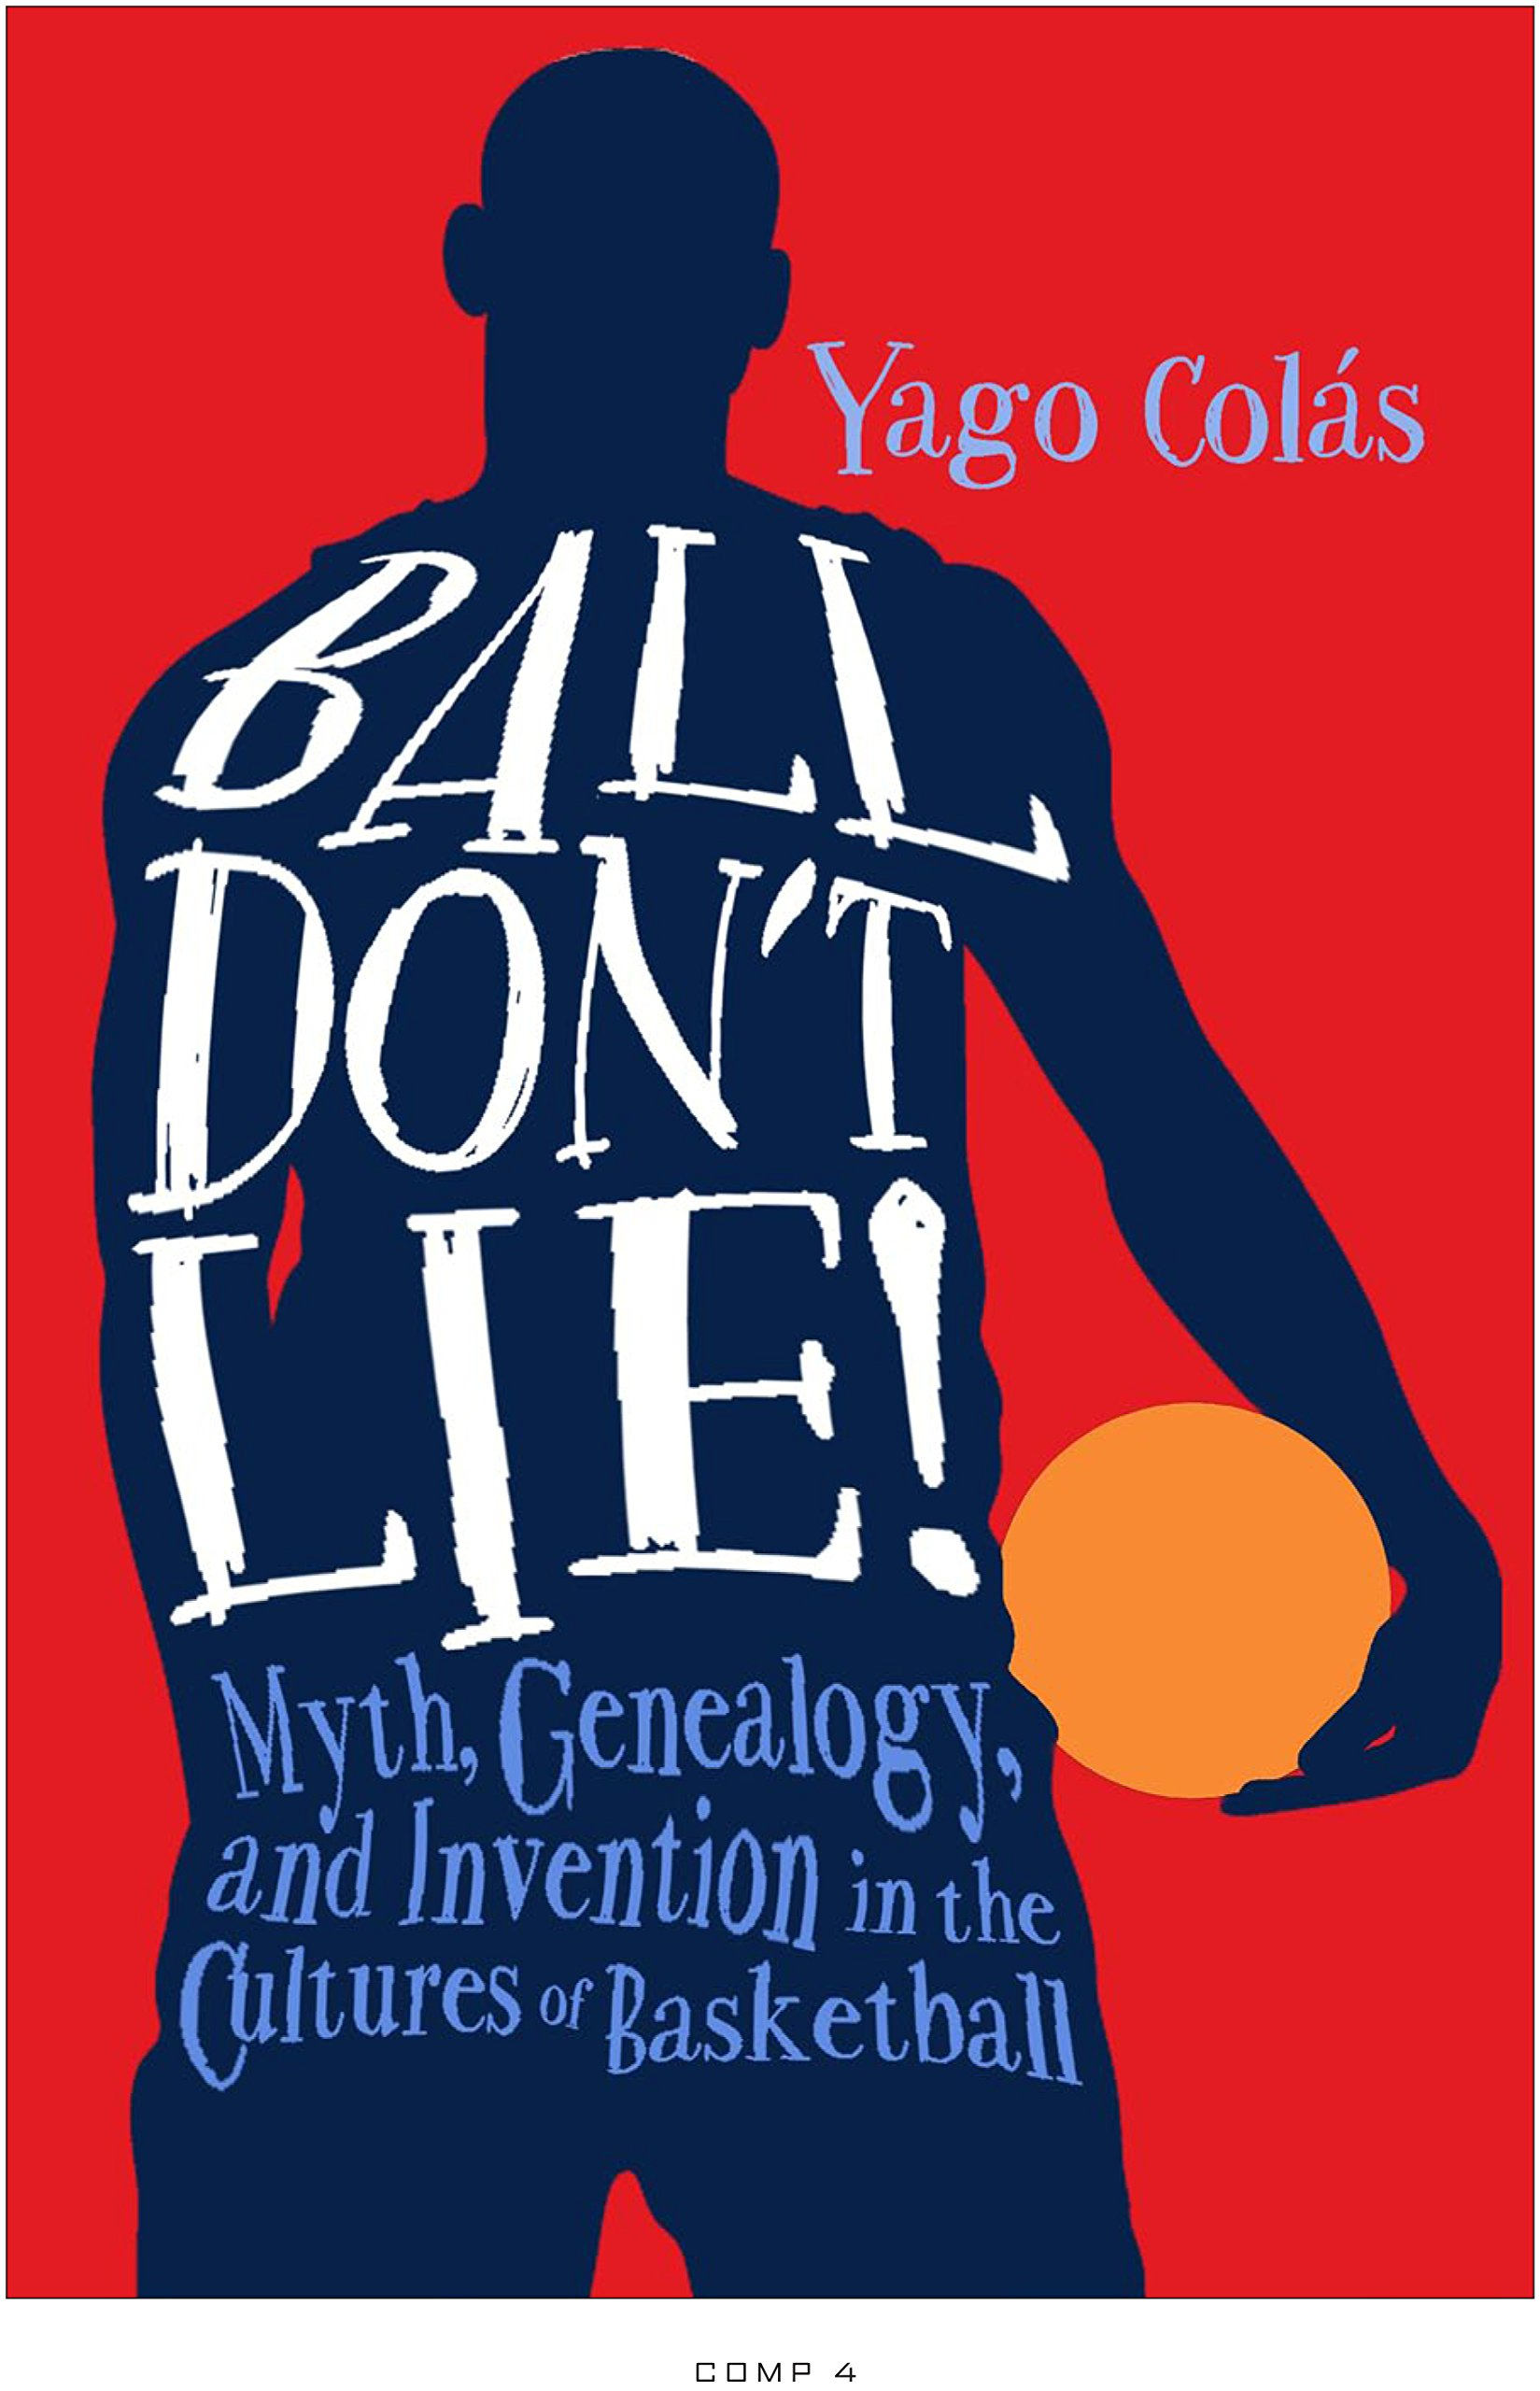 Ball Don't Lie: Myth, Genealogy, and Invention in the Cultures of Basketball